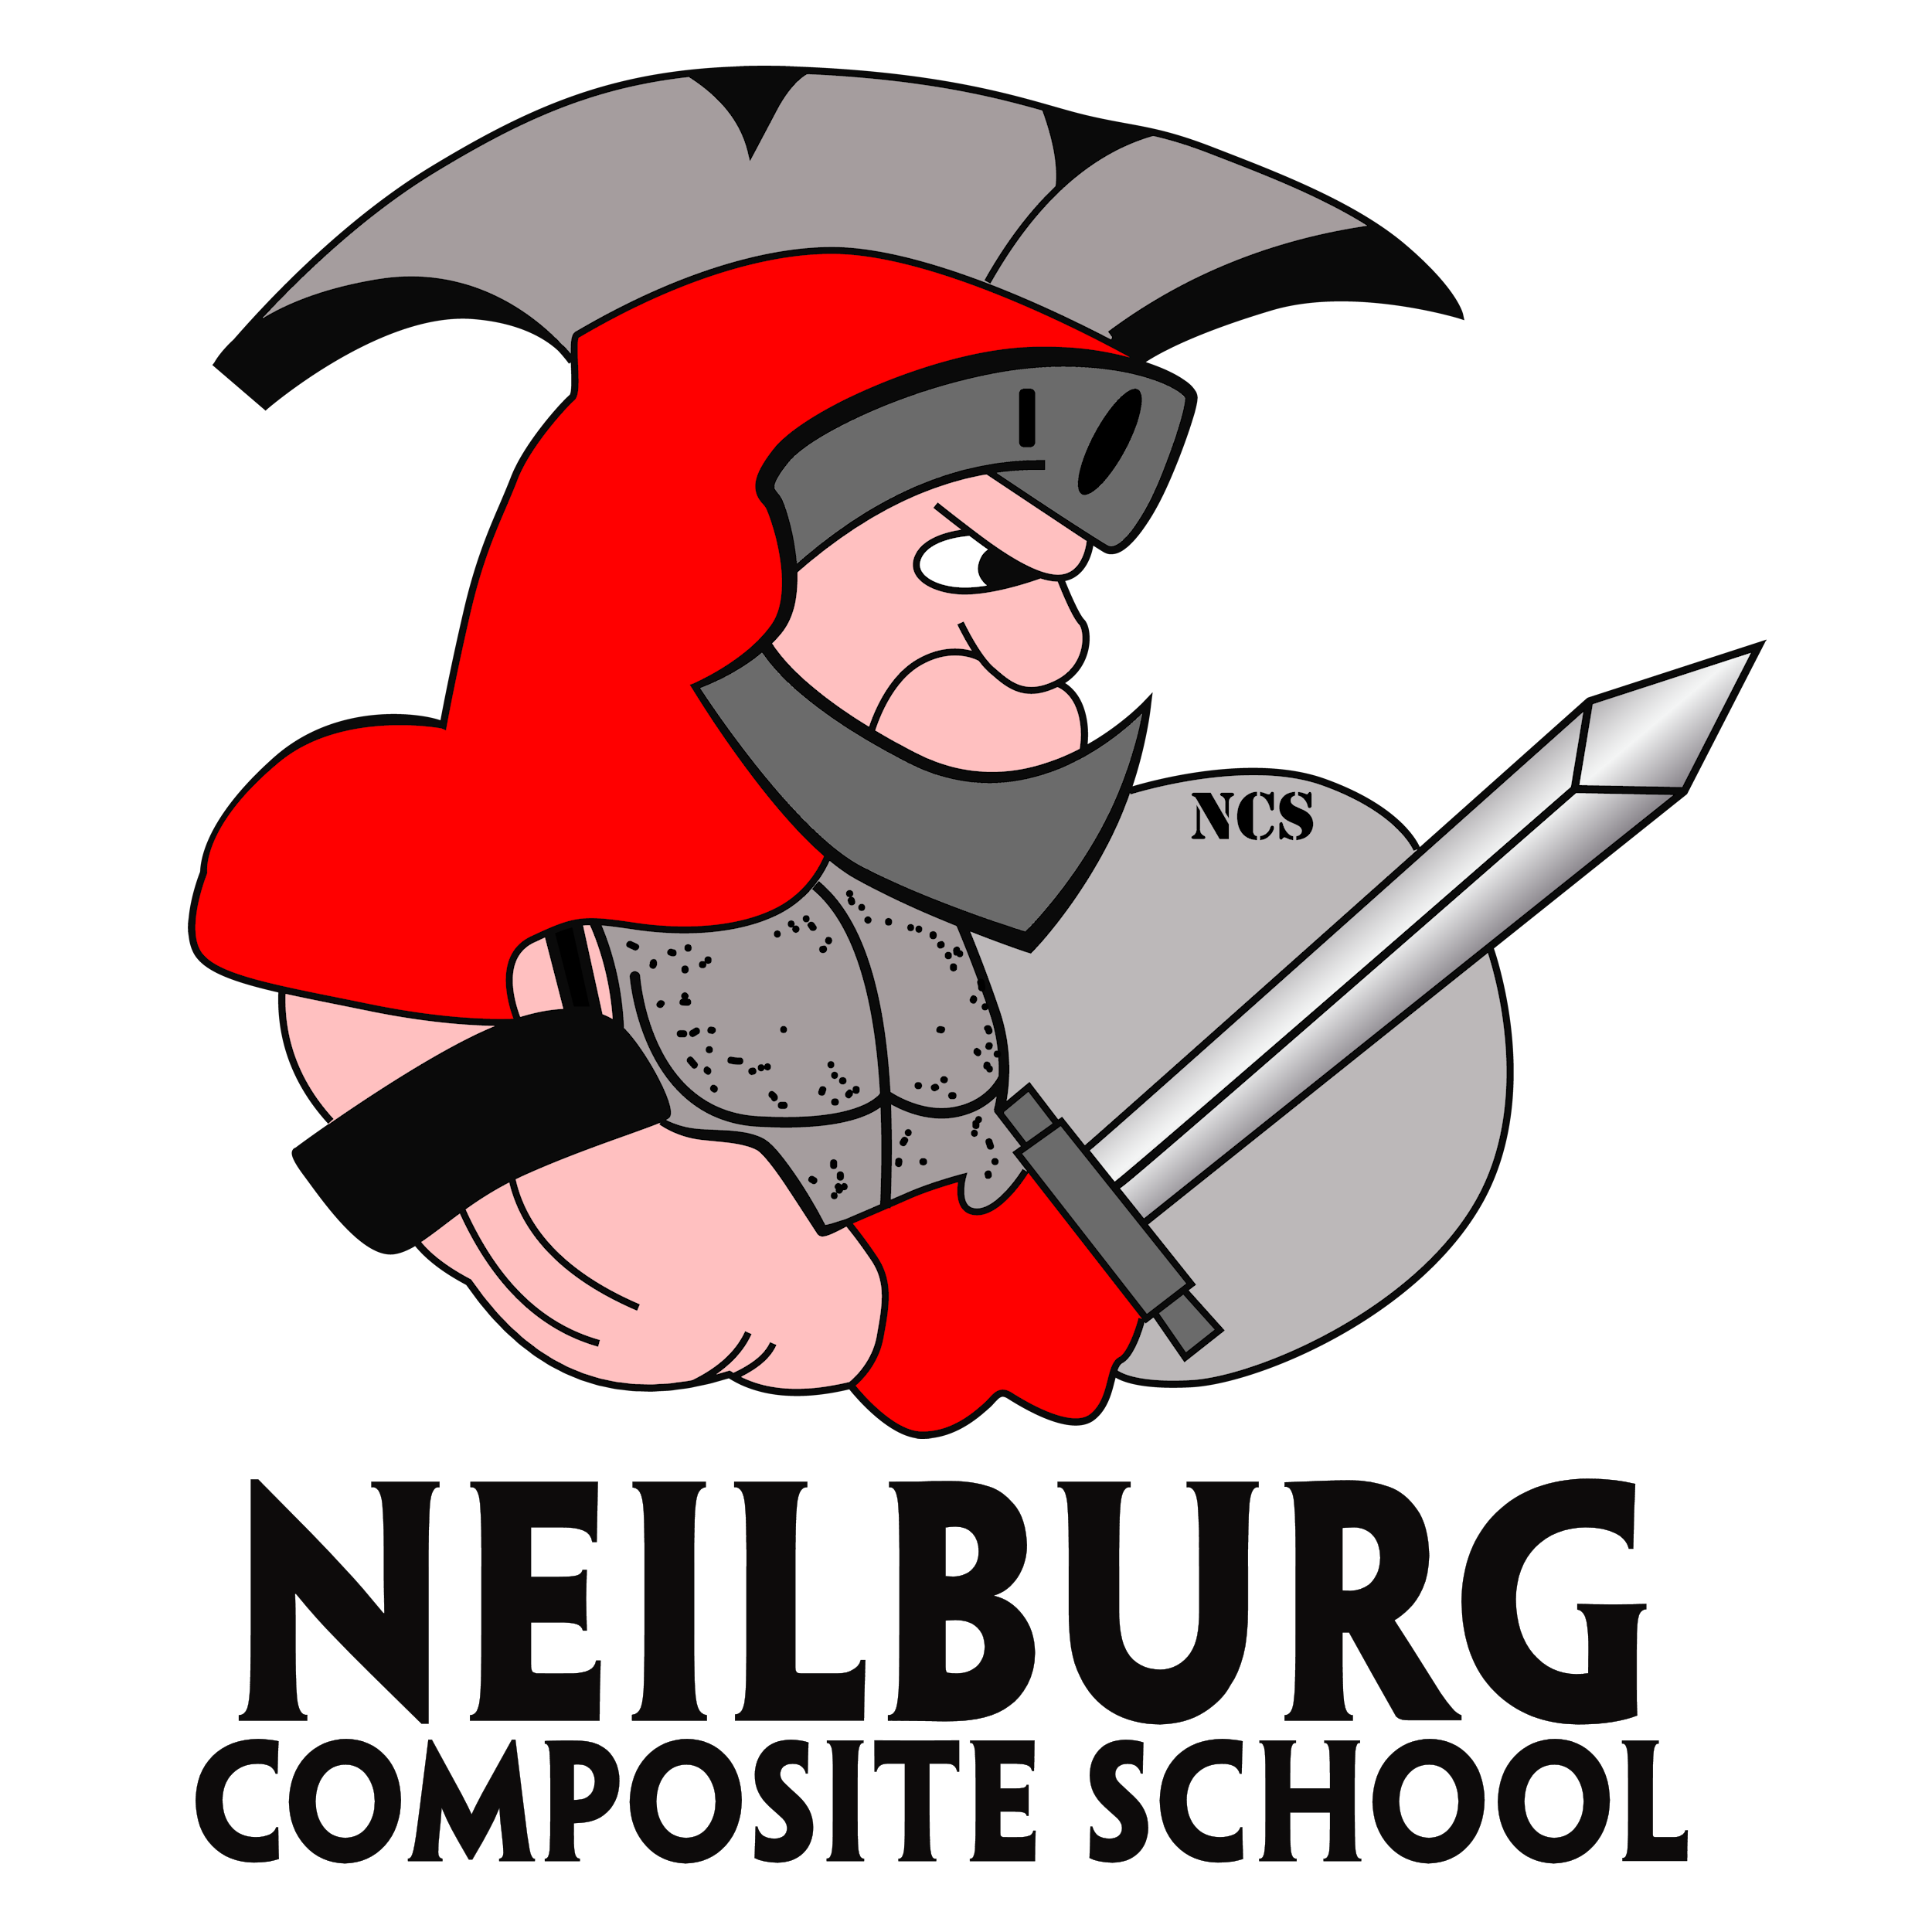 Neilburg composite school to. Mail clipart welcome letter